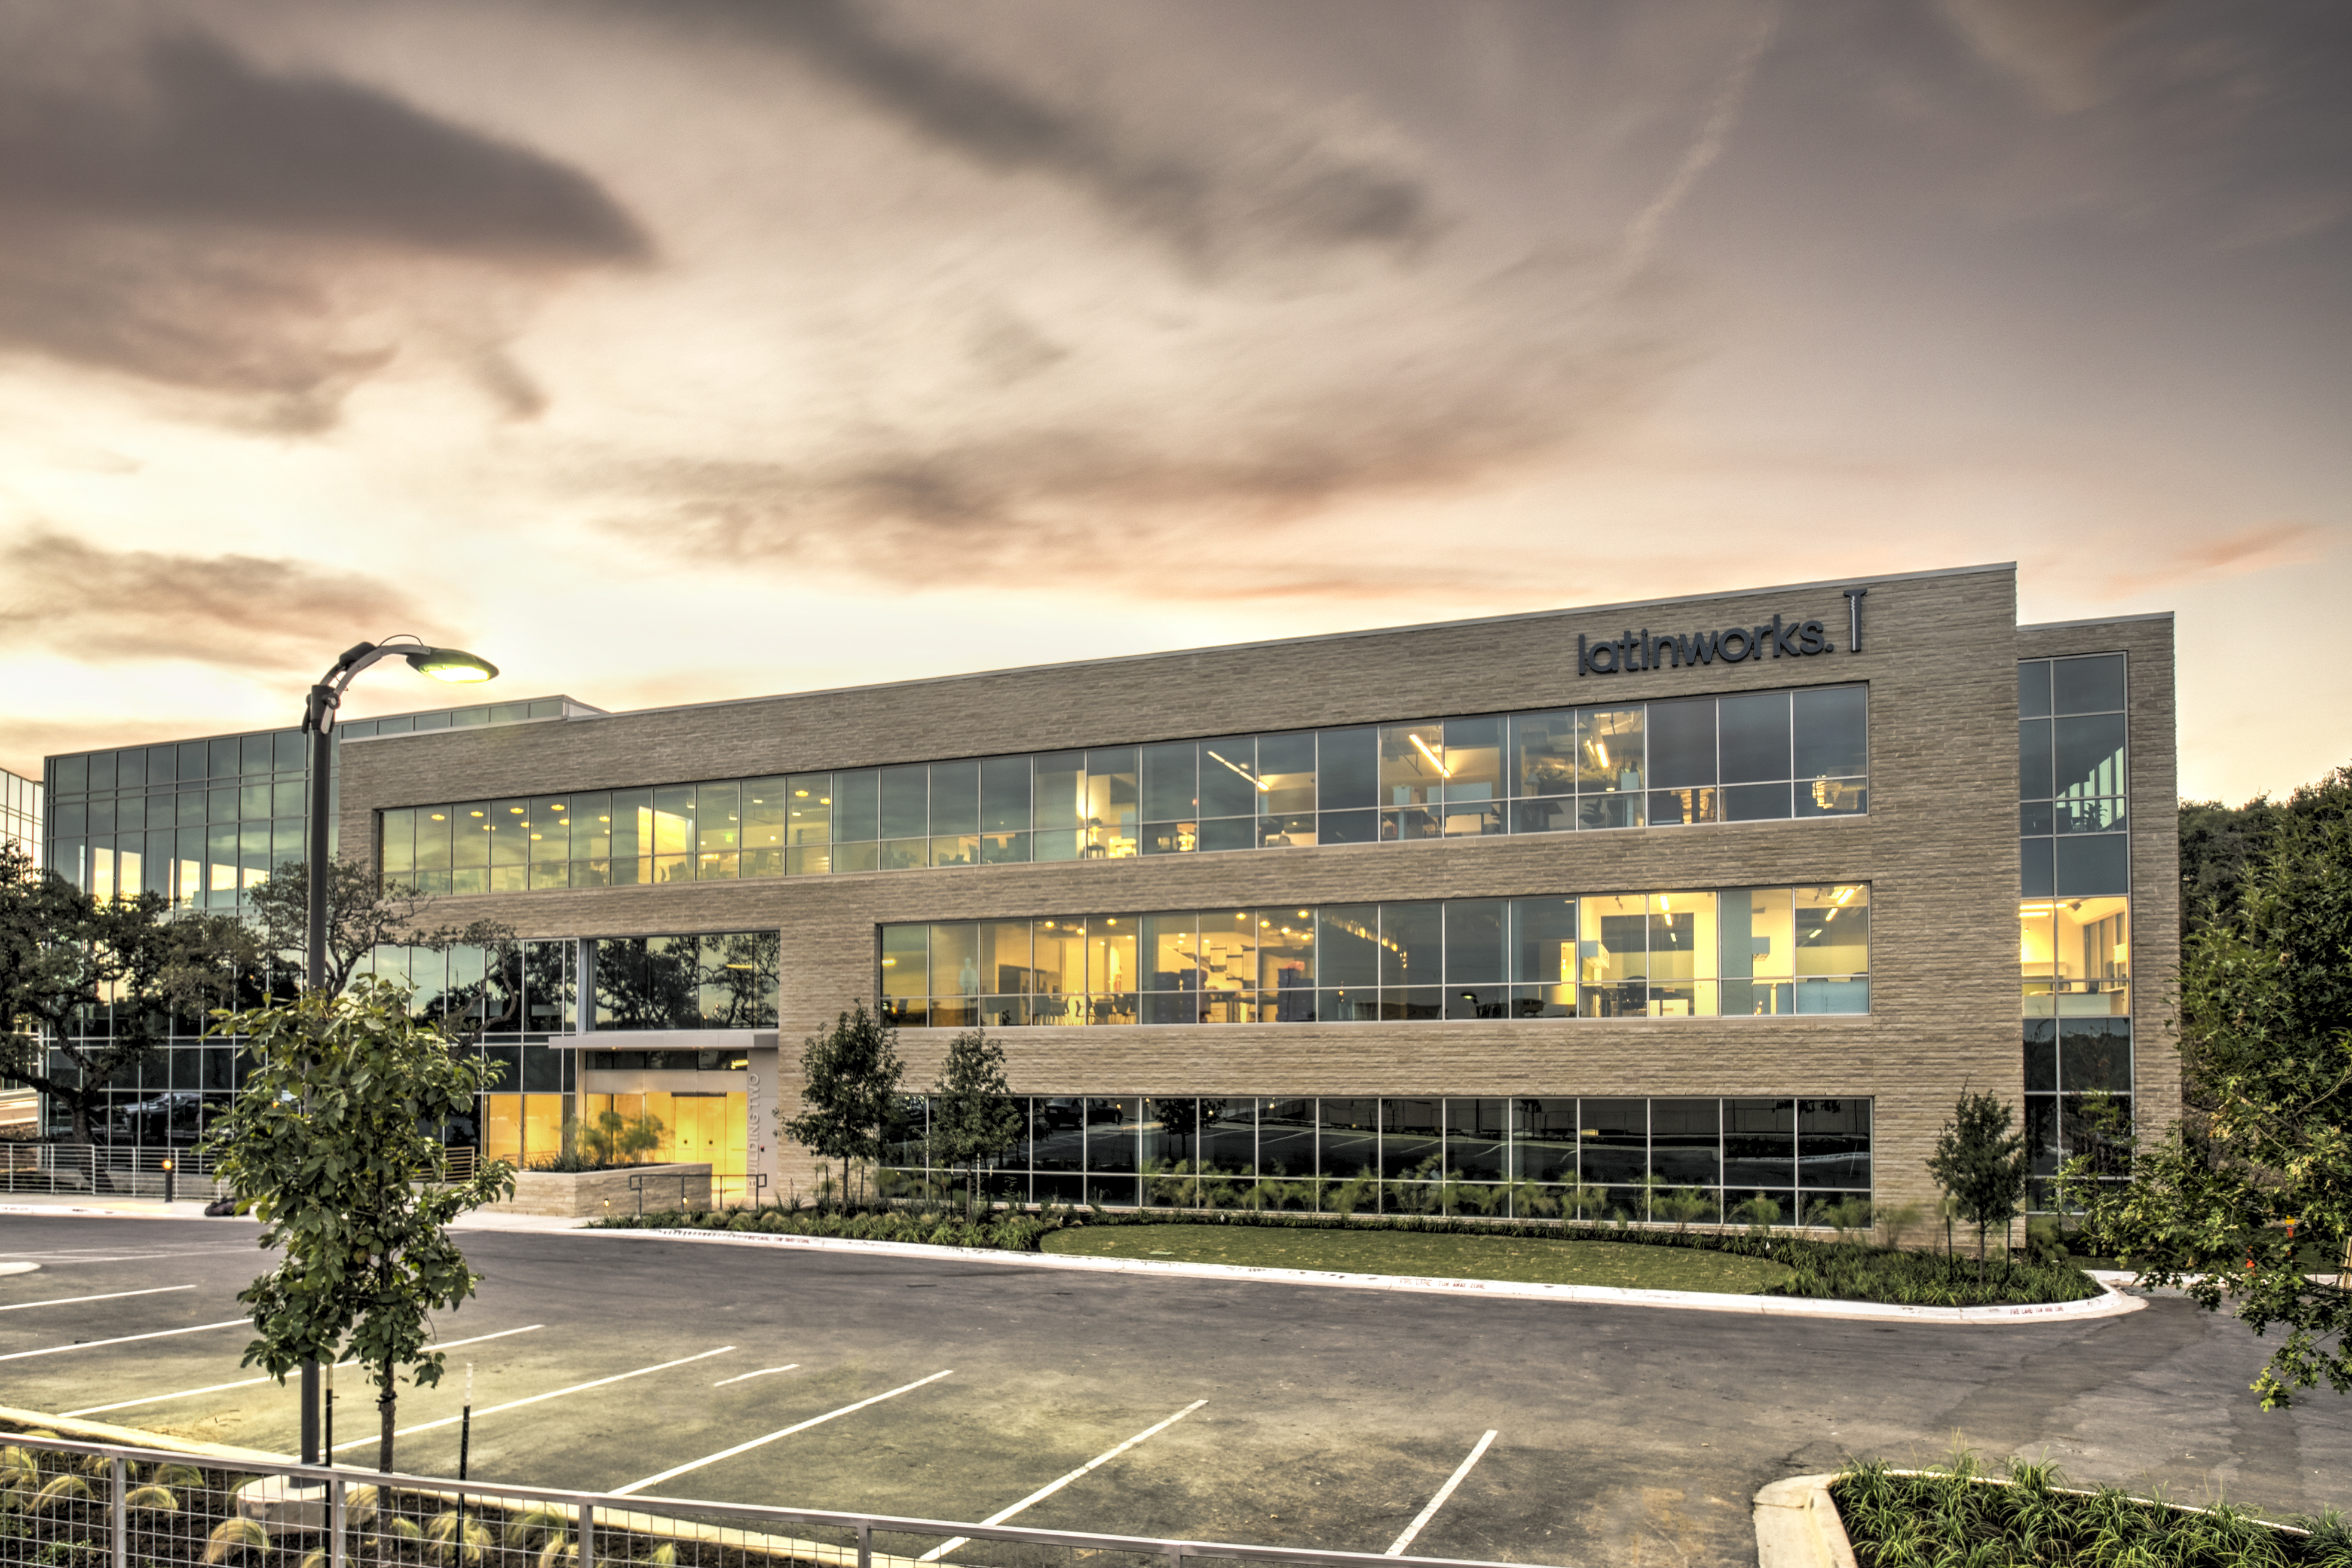 A photo of Latinwork's office building exterior at sunset in Austin, TX